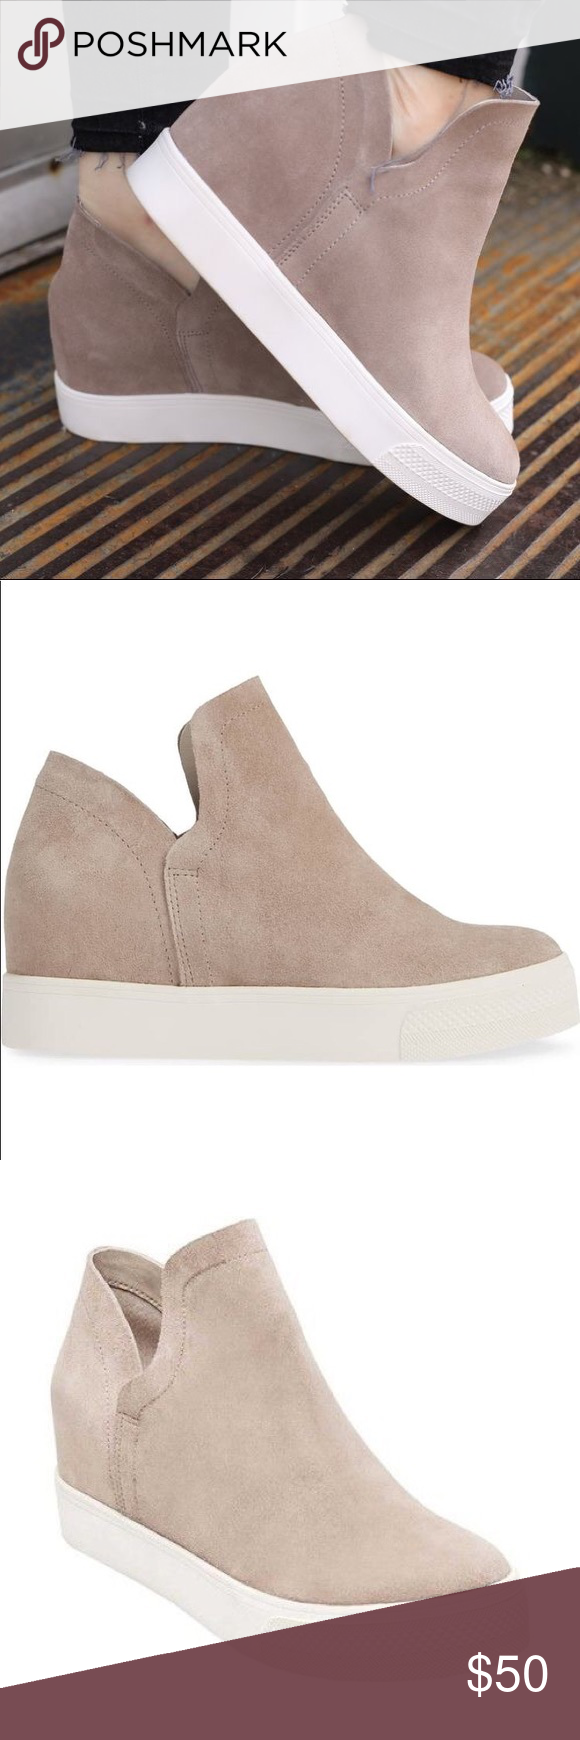 8e5d1801e84 ISO Steve Madden Wrangle Taupe Sneakers In search of (not selling). these Steve  Madden Wrangle sneakers in taupe. Looking for a size 8.5 or 9!